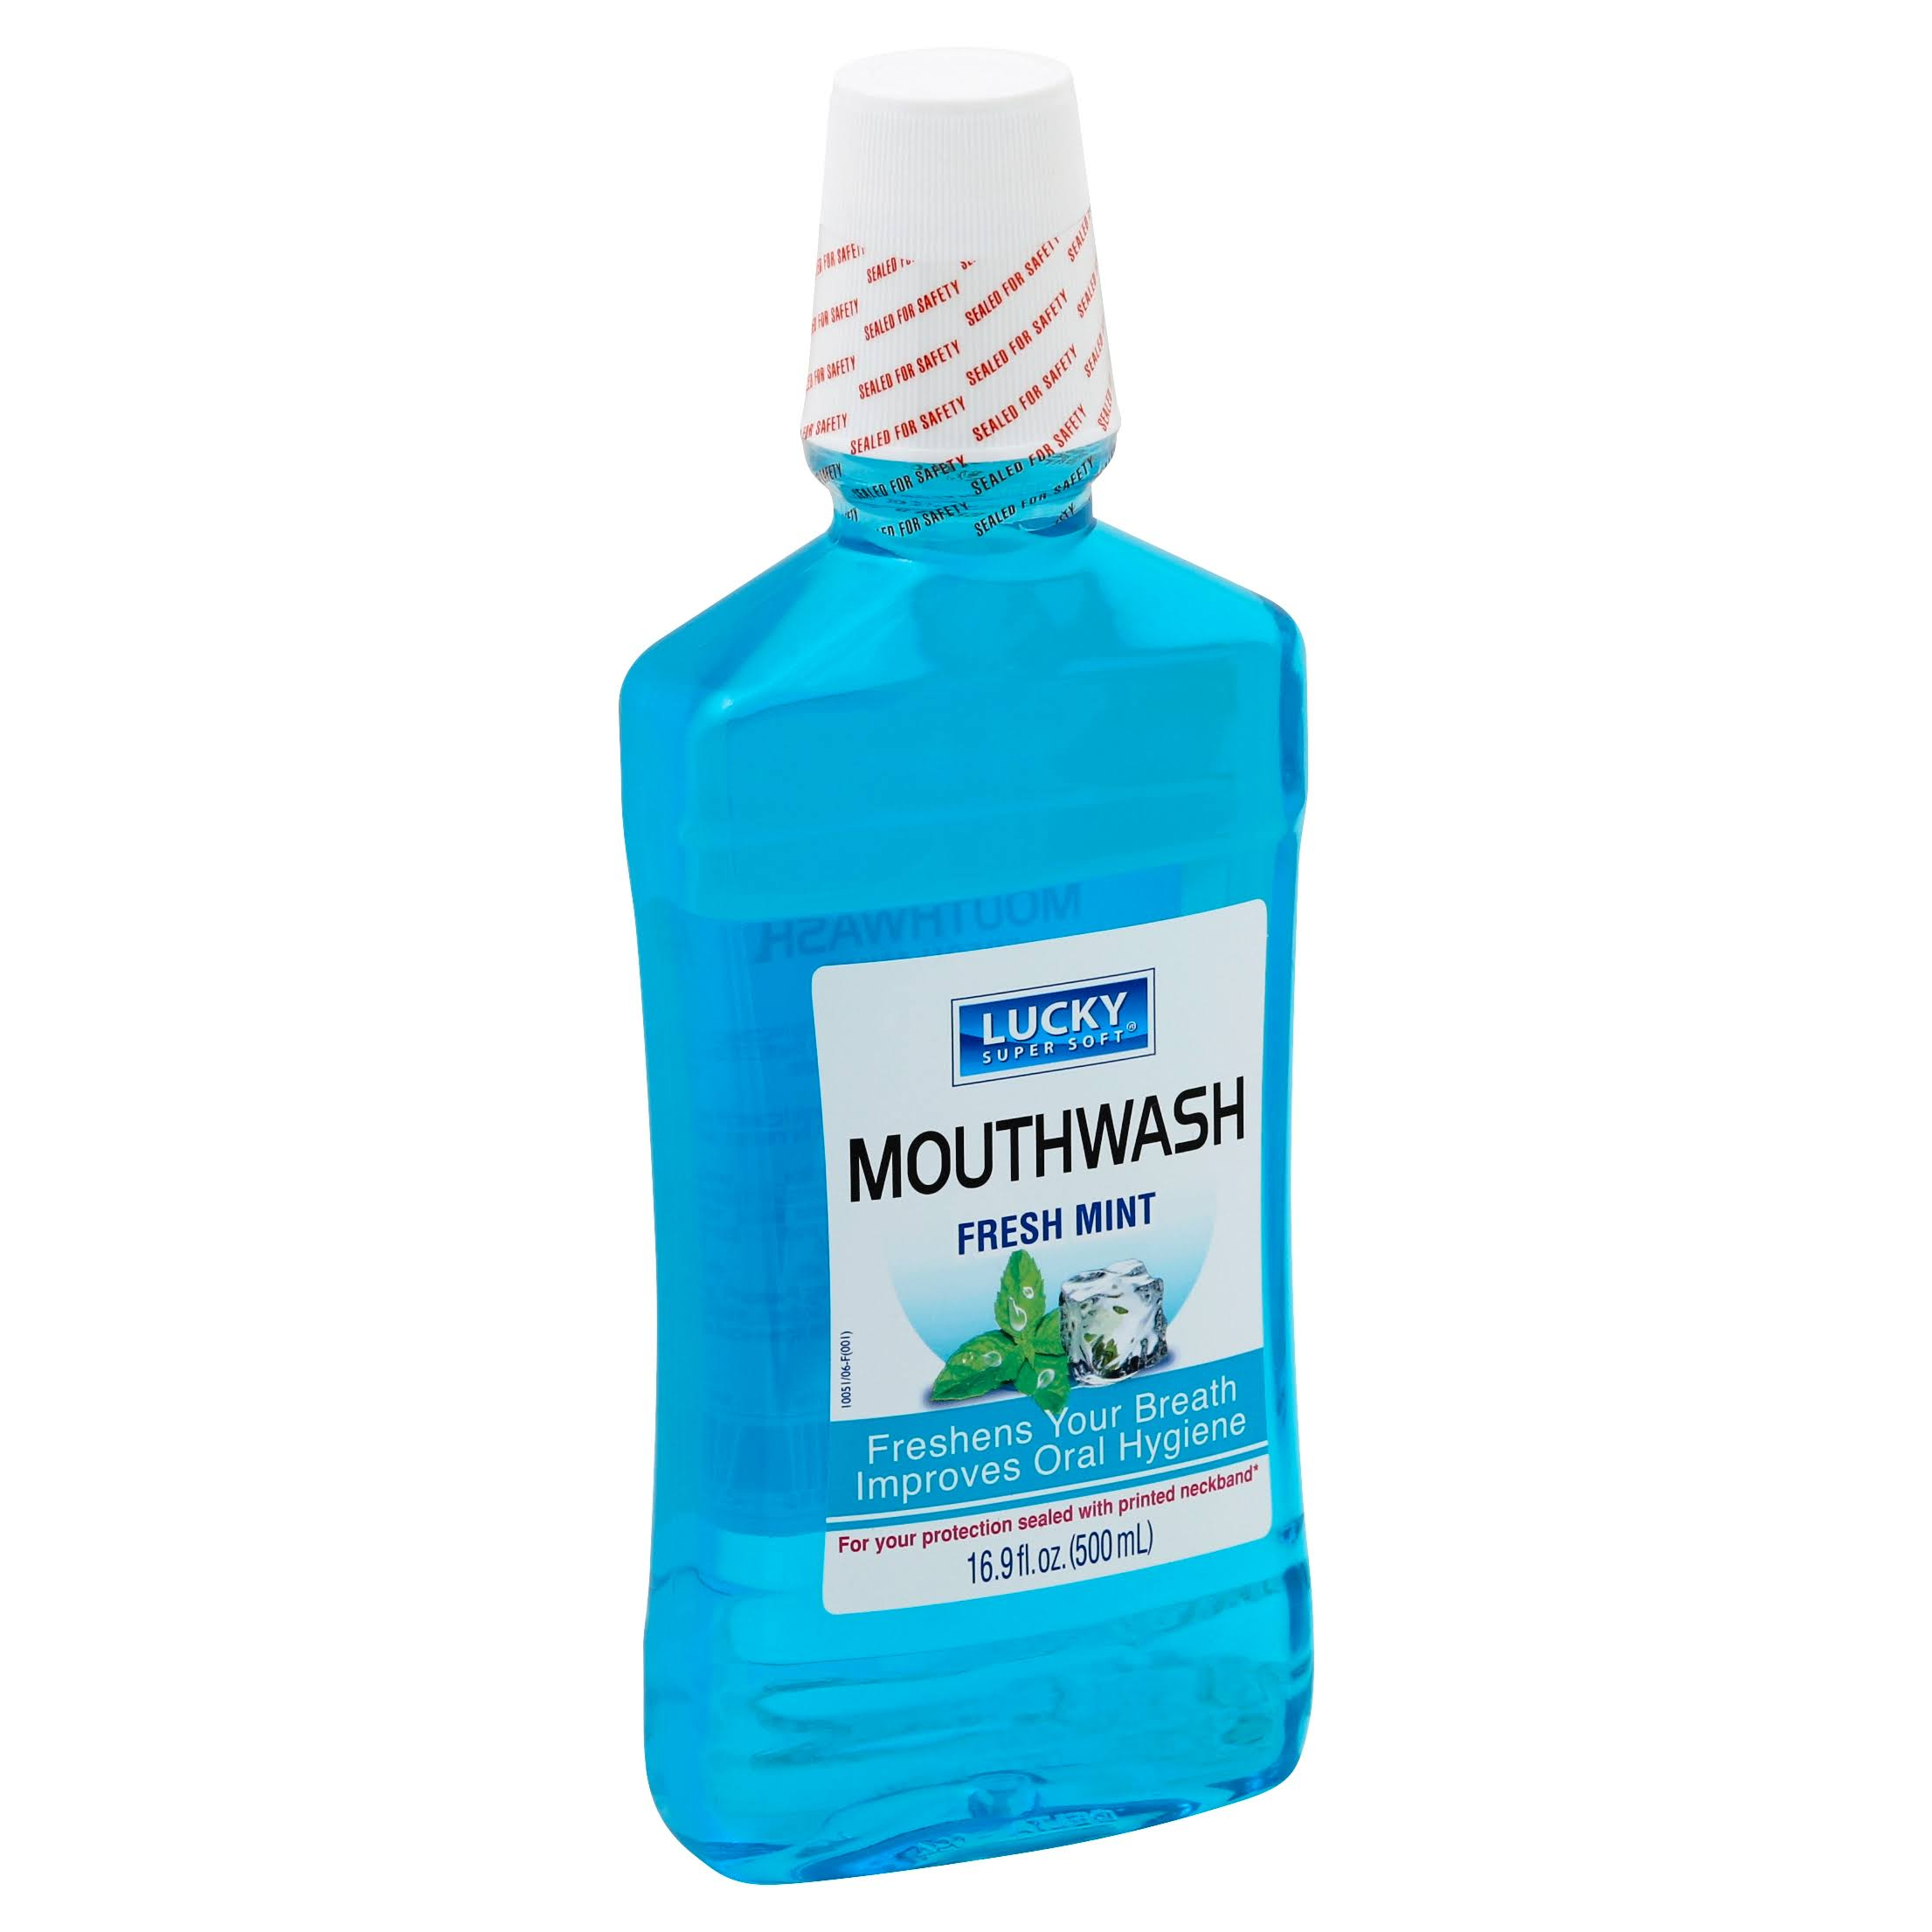 Lucky Mouth Wash - Ice Cool Mint, 16.9oz